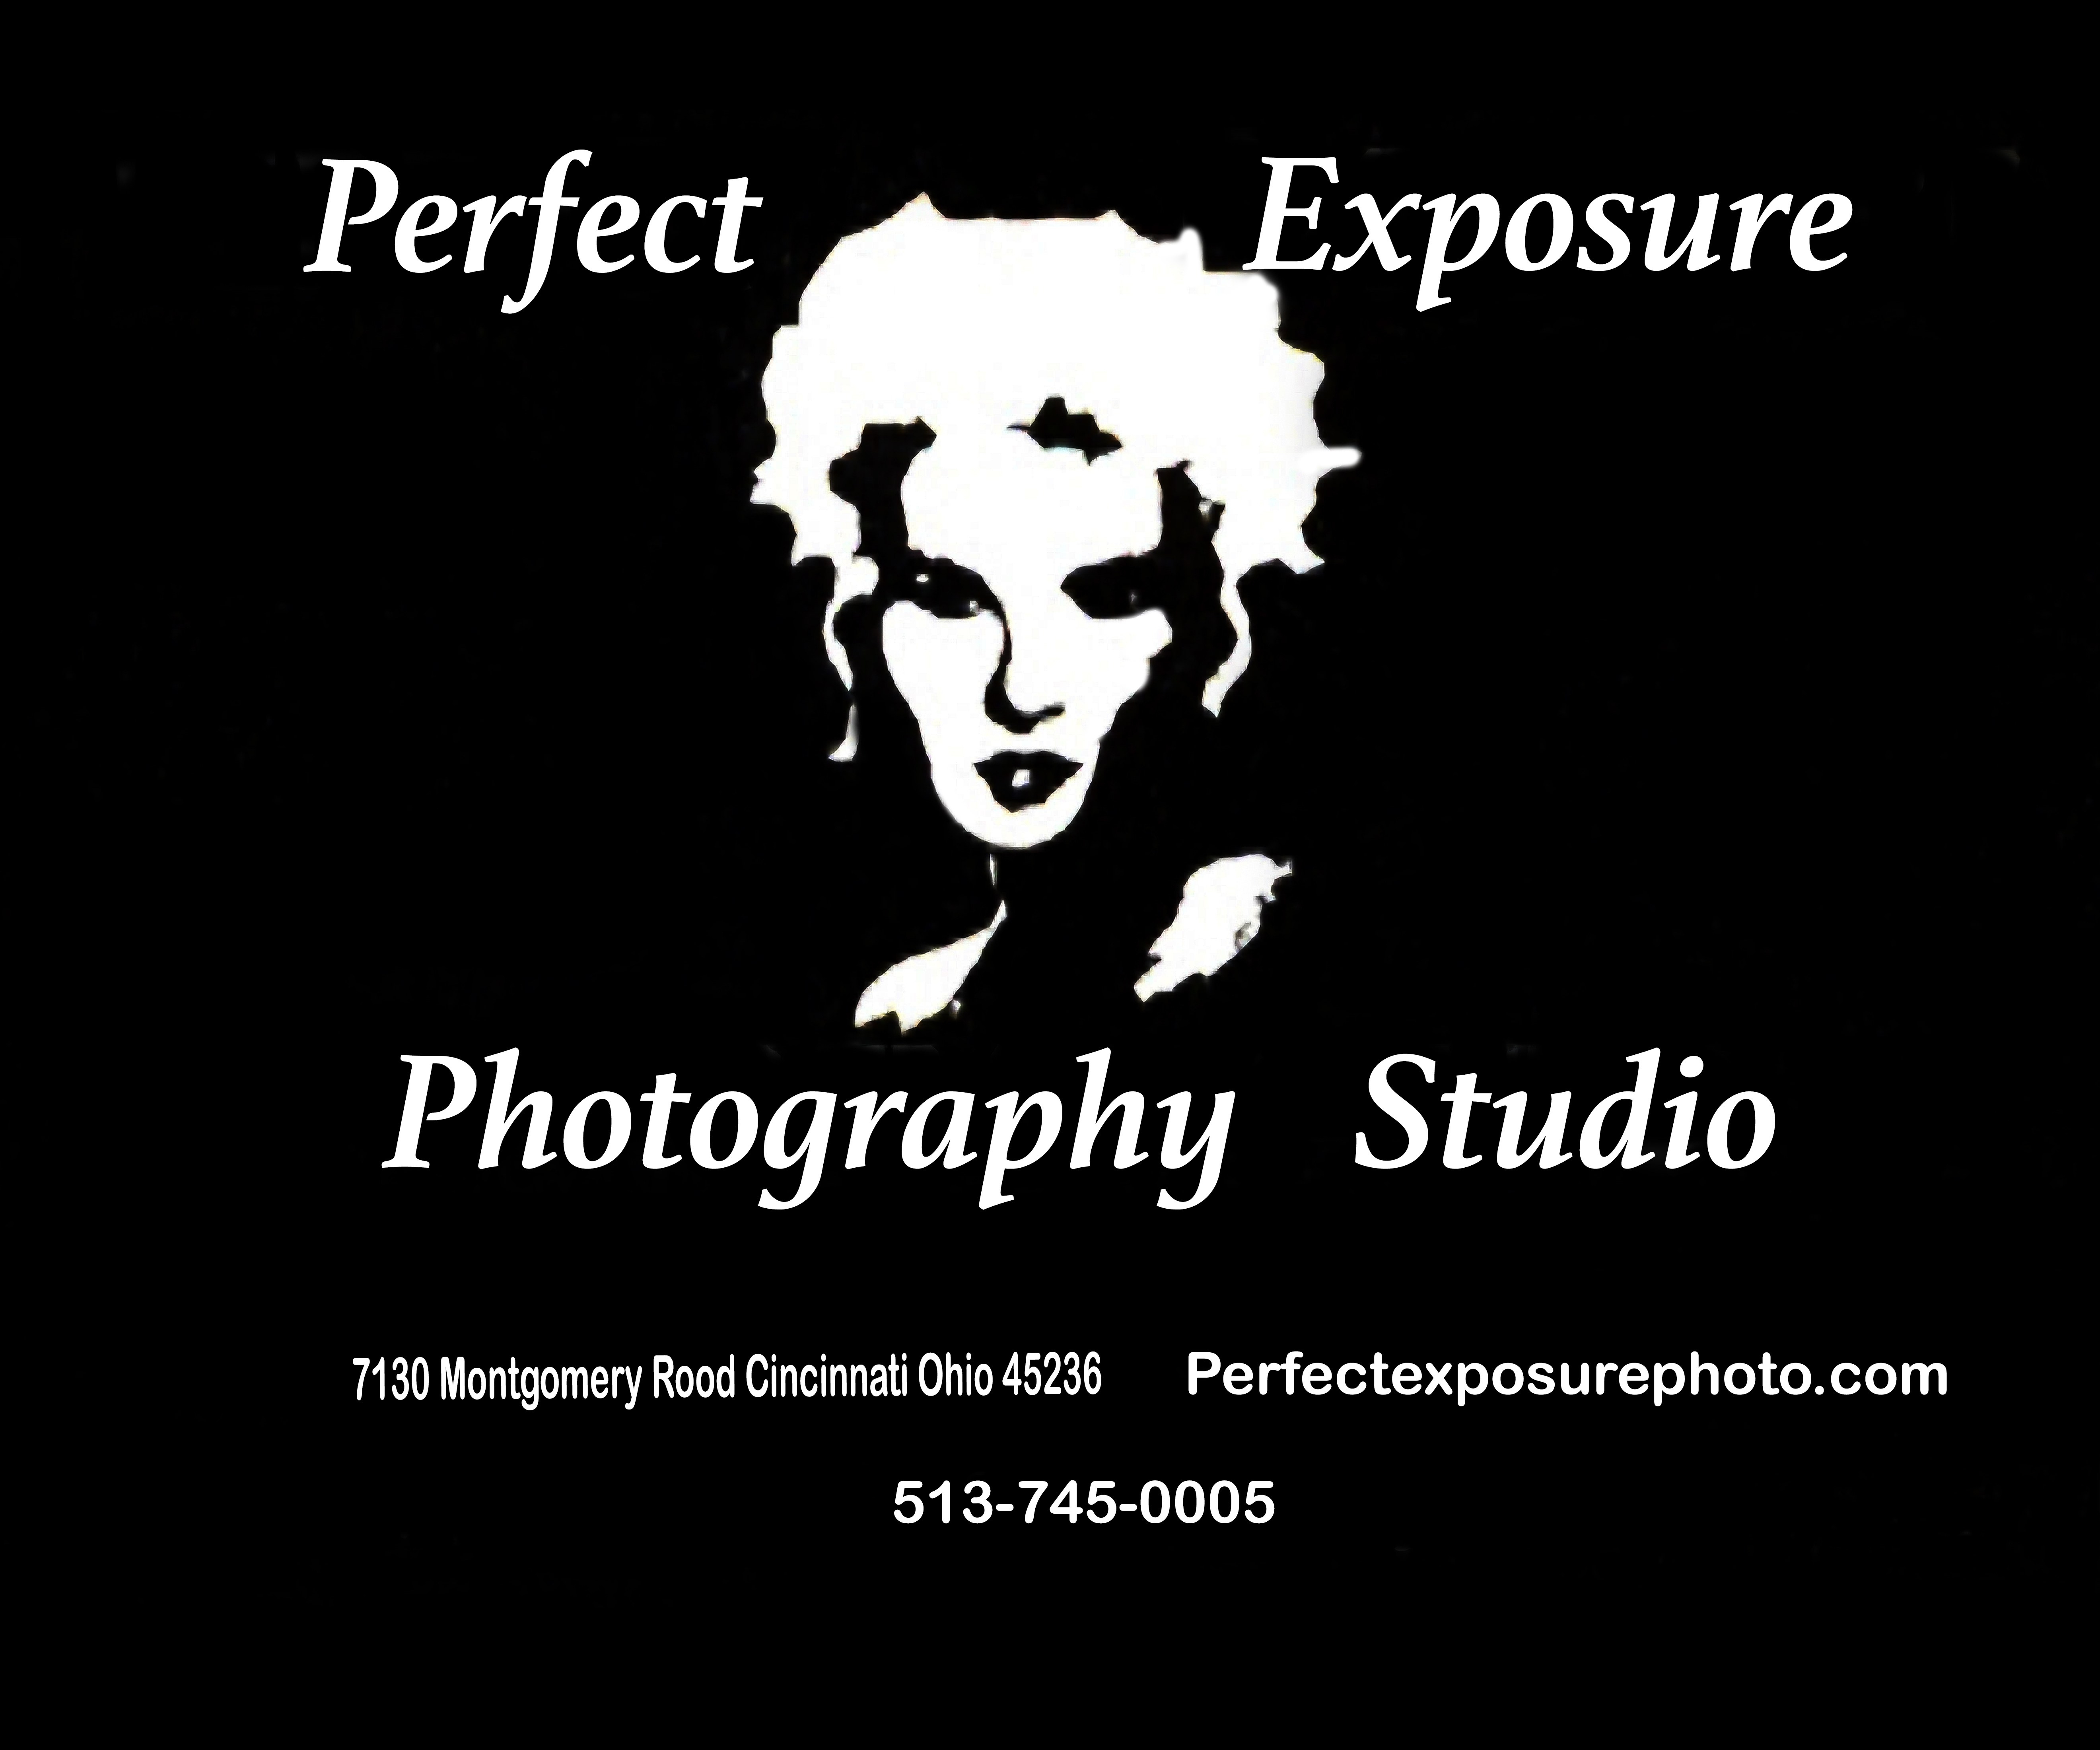 Perfect Exposure Photography Studio